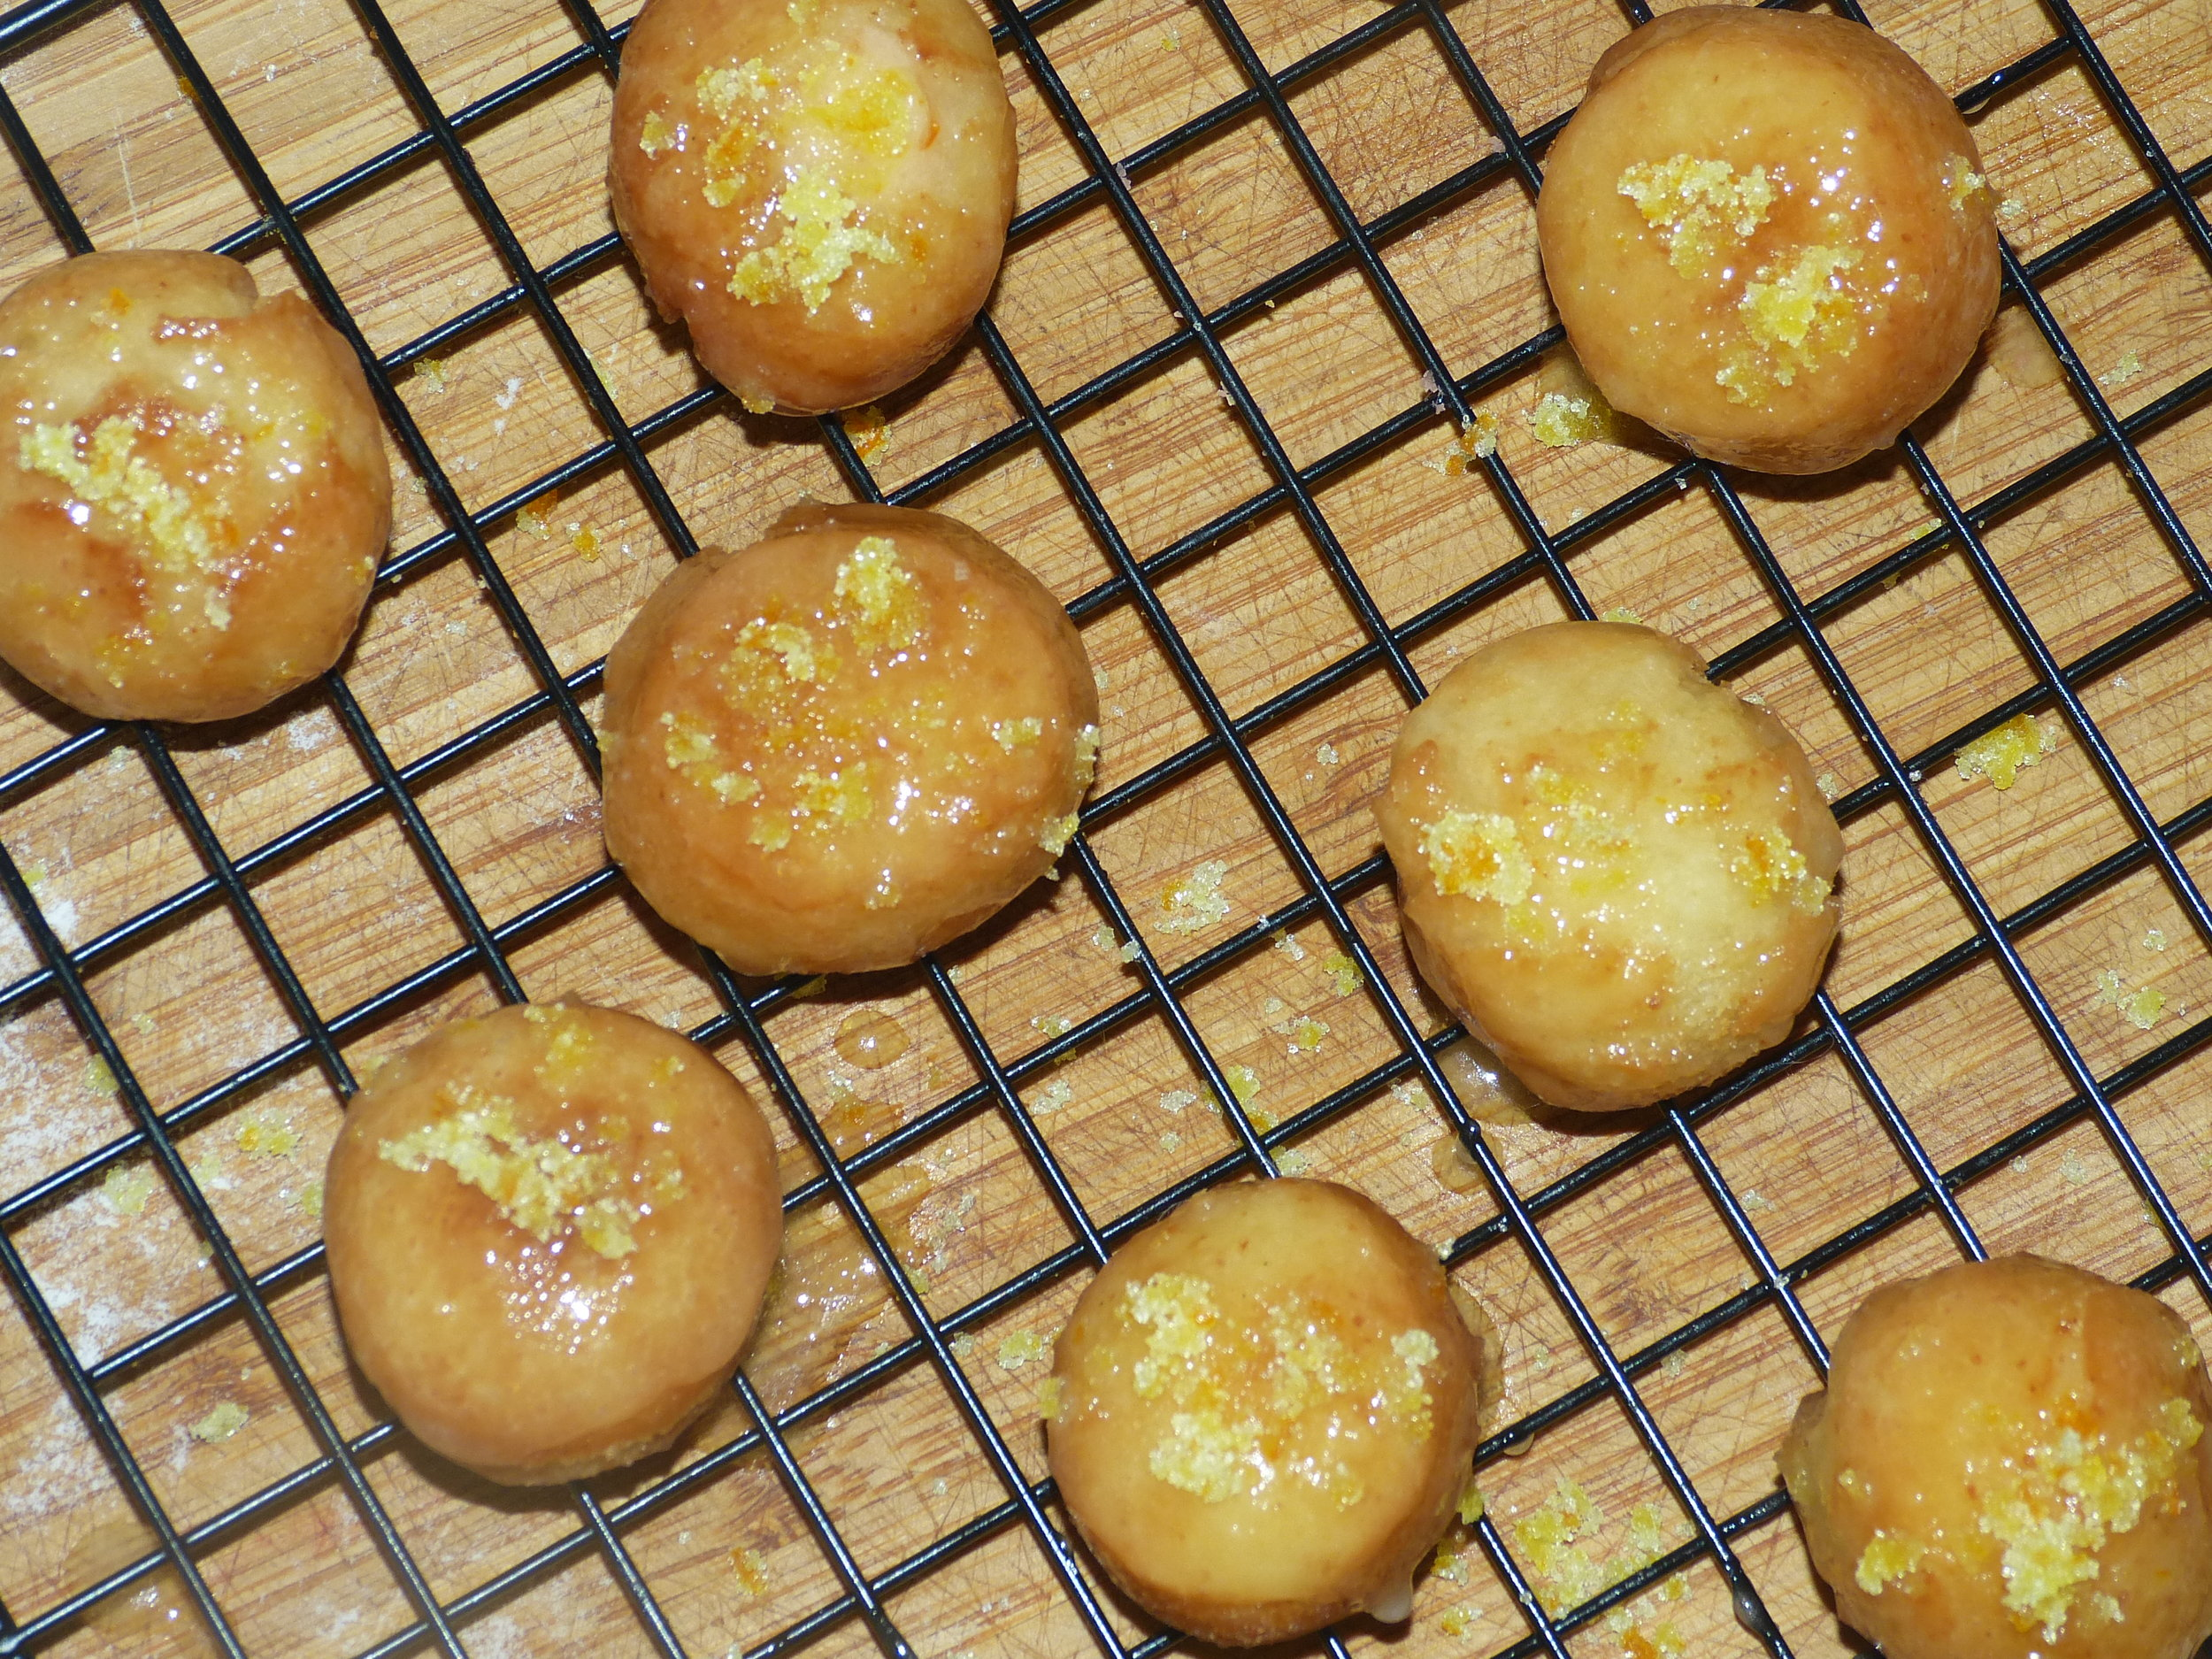 Step 10 - Let the glazed doughnuts dry on a cooking rack until they are no longer sticky...then enjoy!